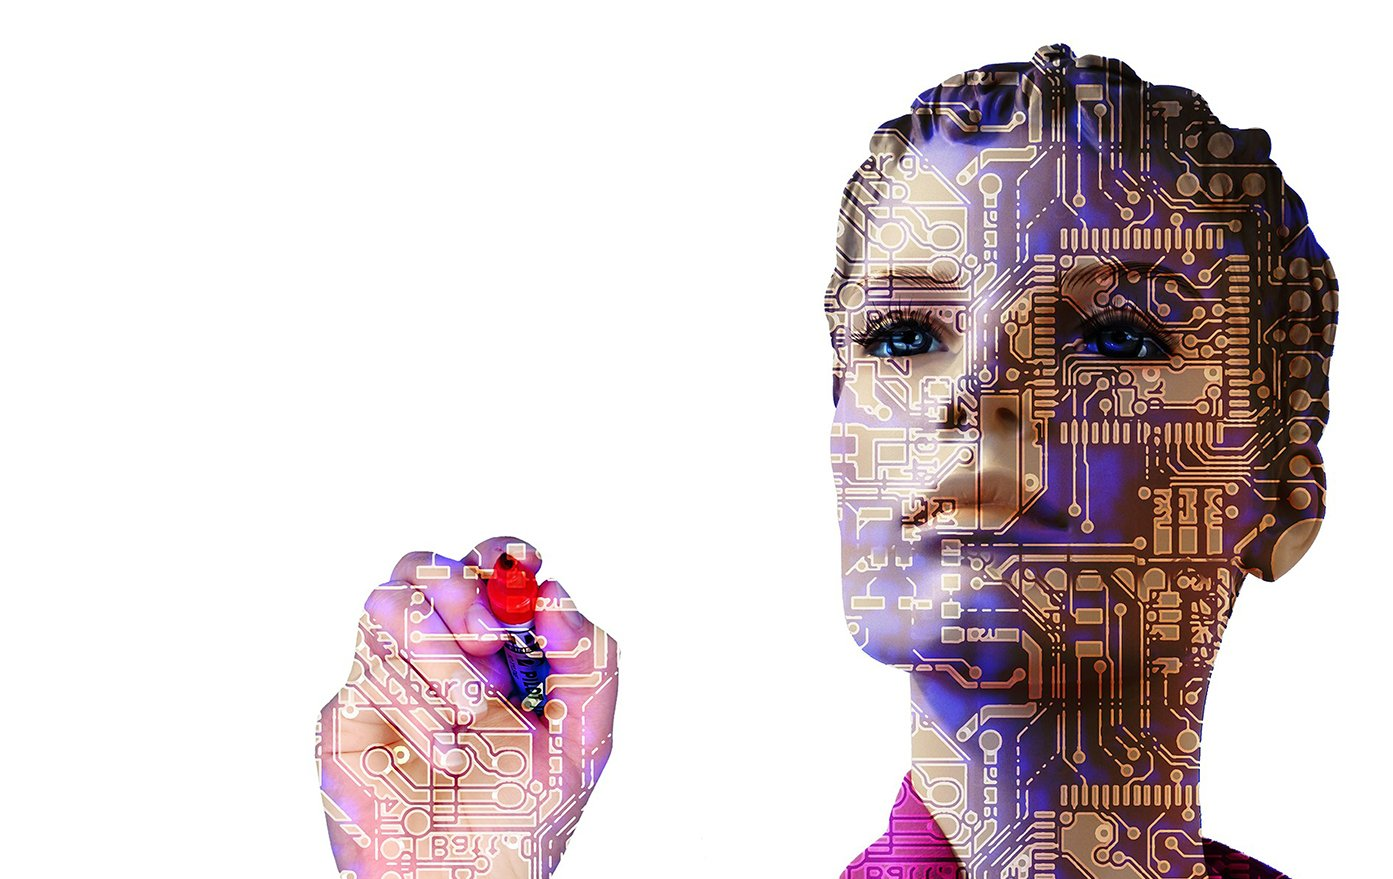 AI ethics, foresight and ethics by design: Digital Ethics Summit